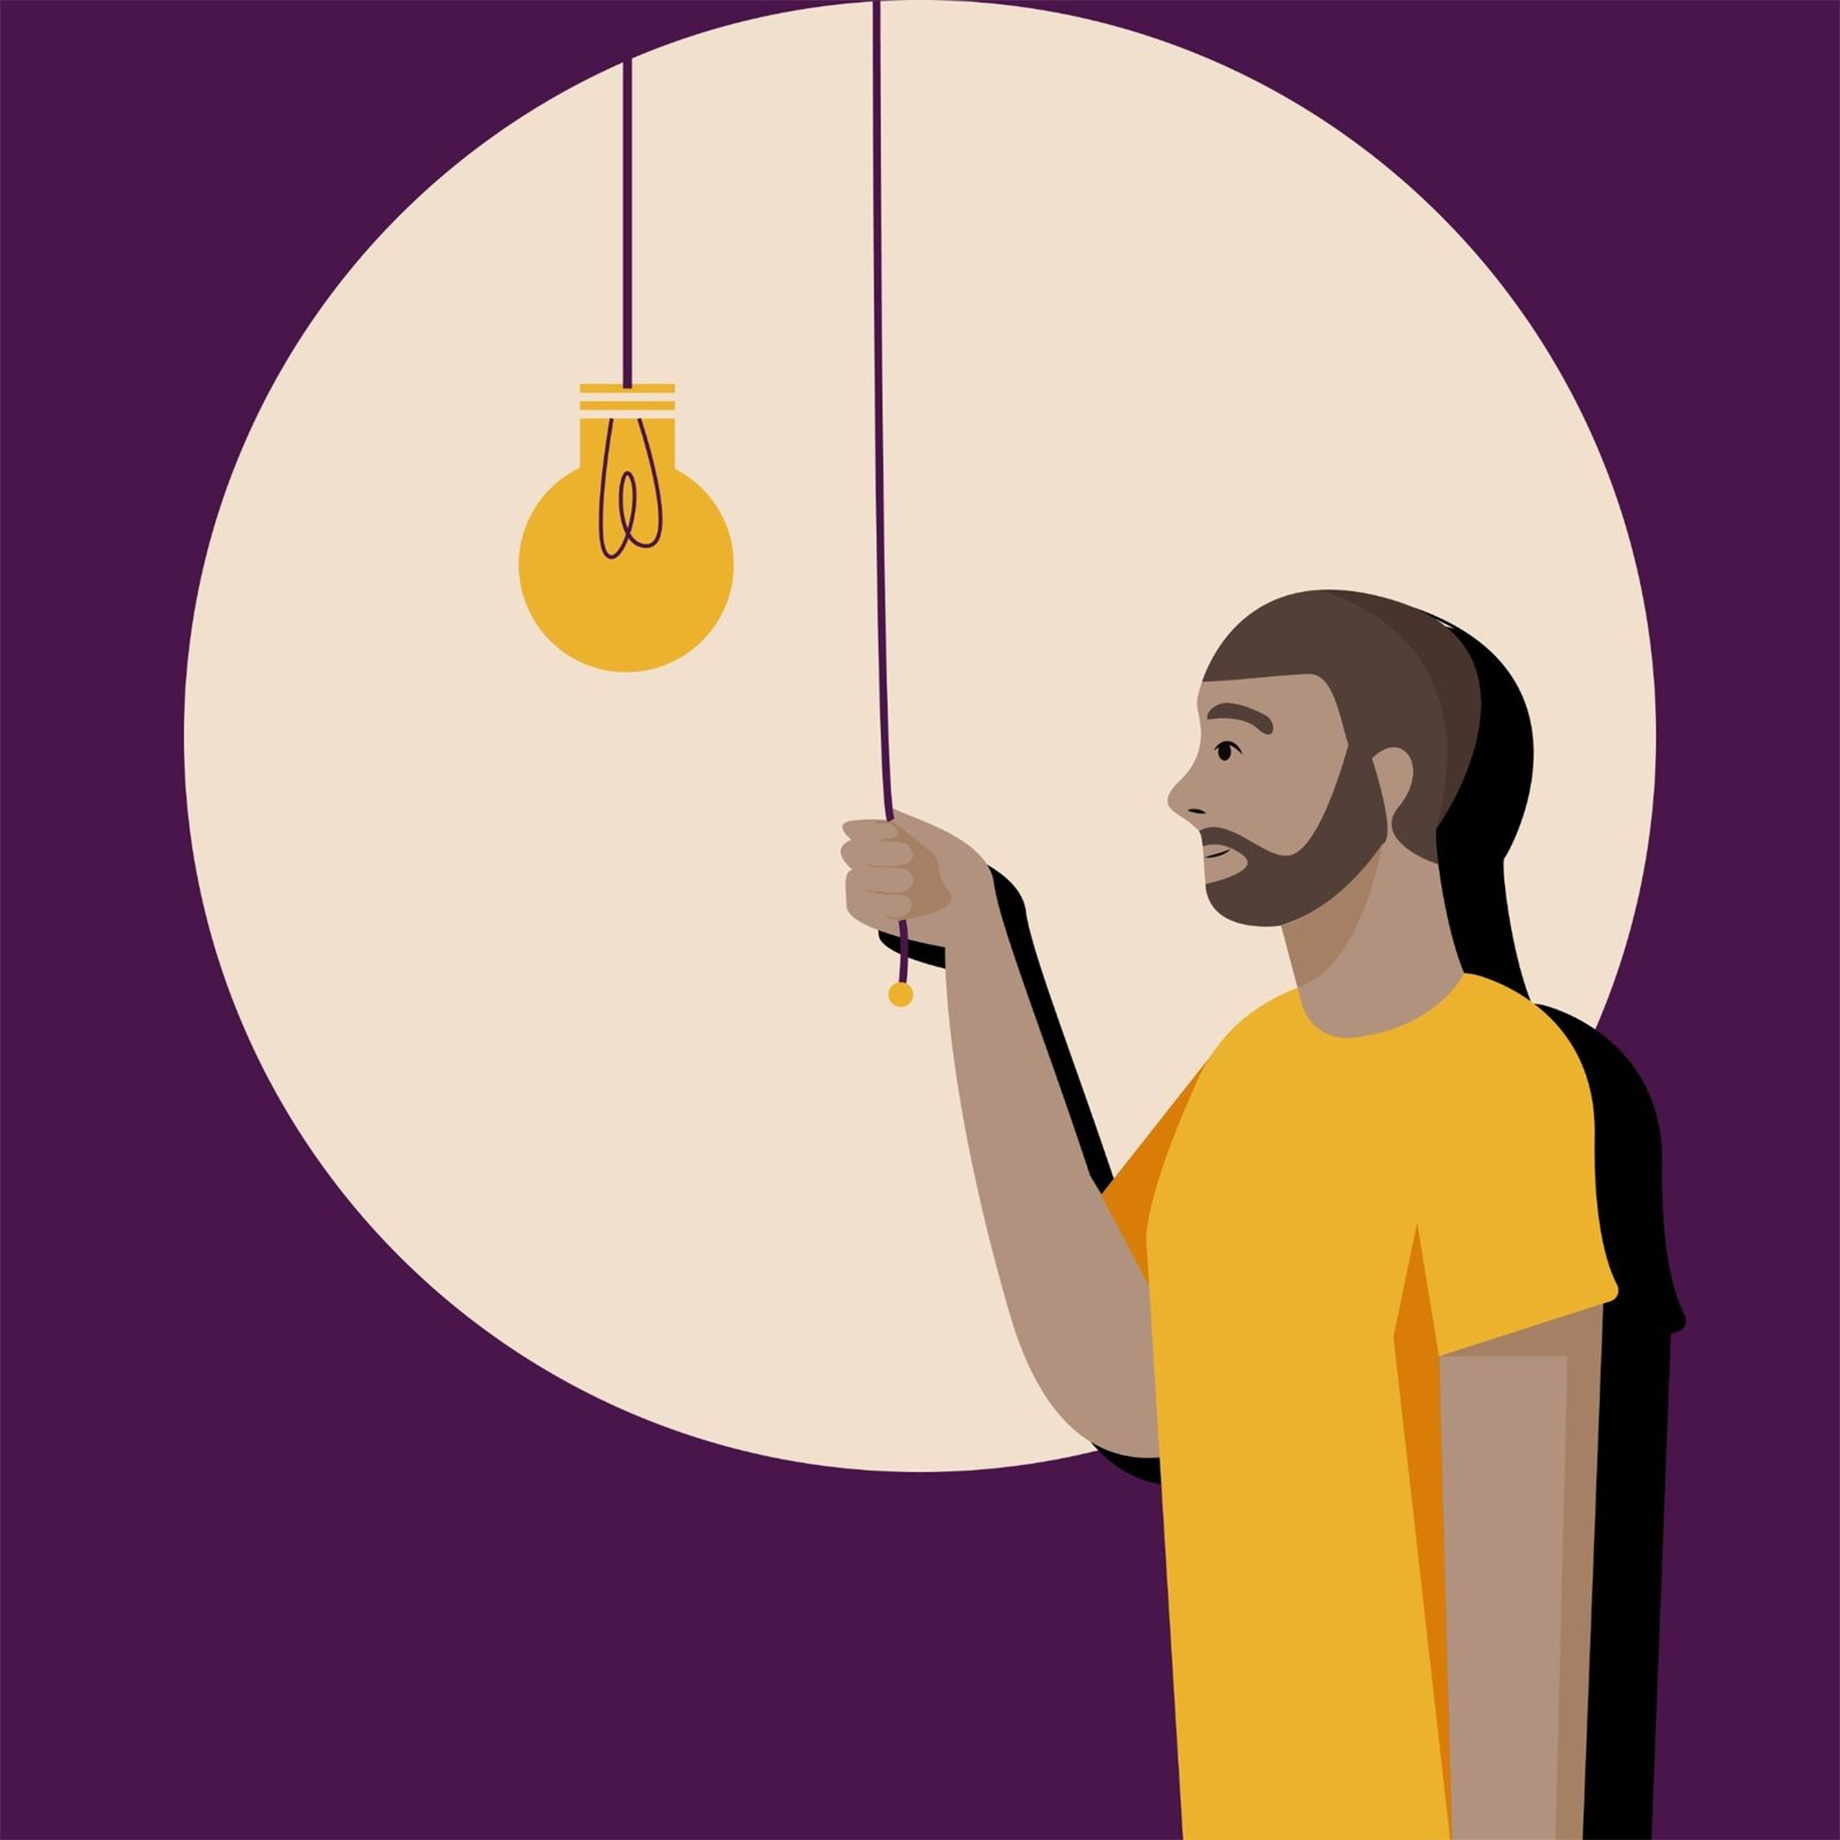 Man turning on the light to productivity